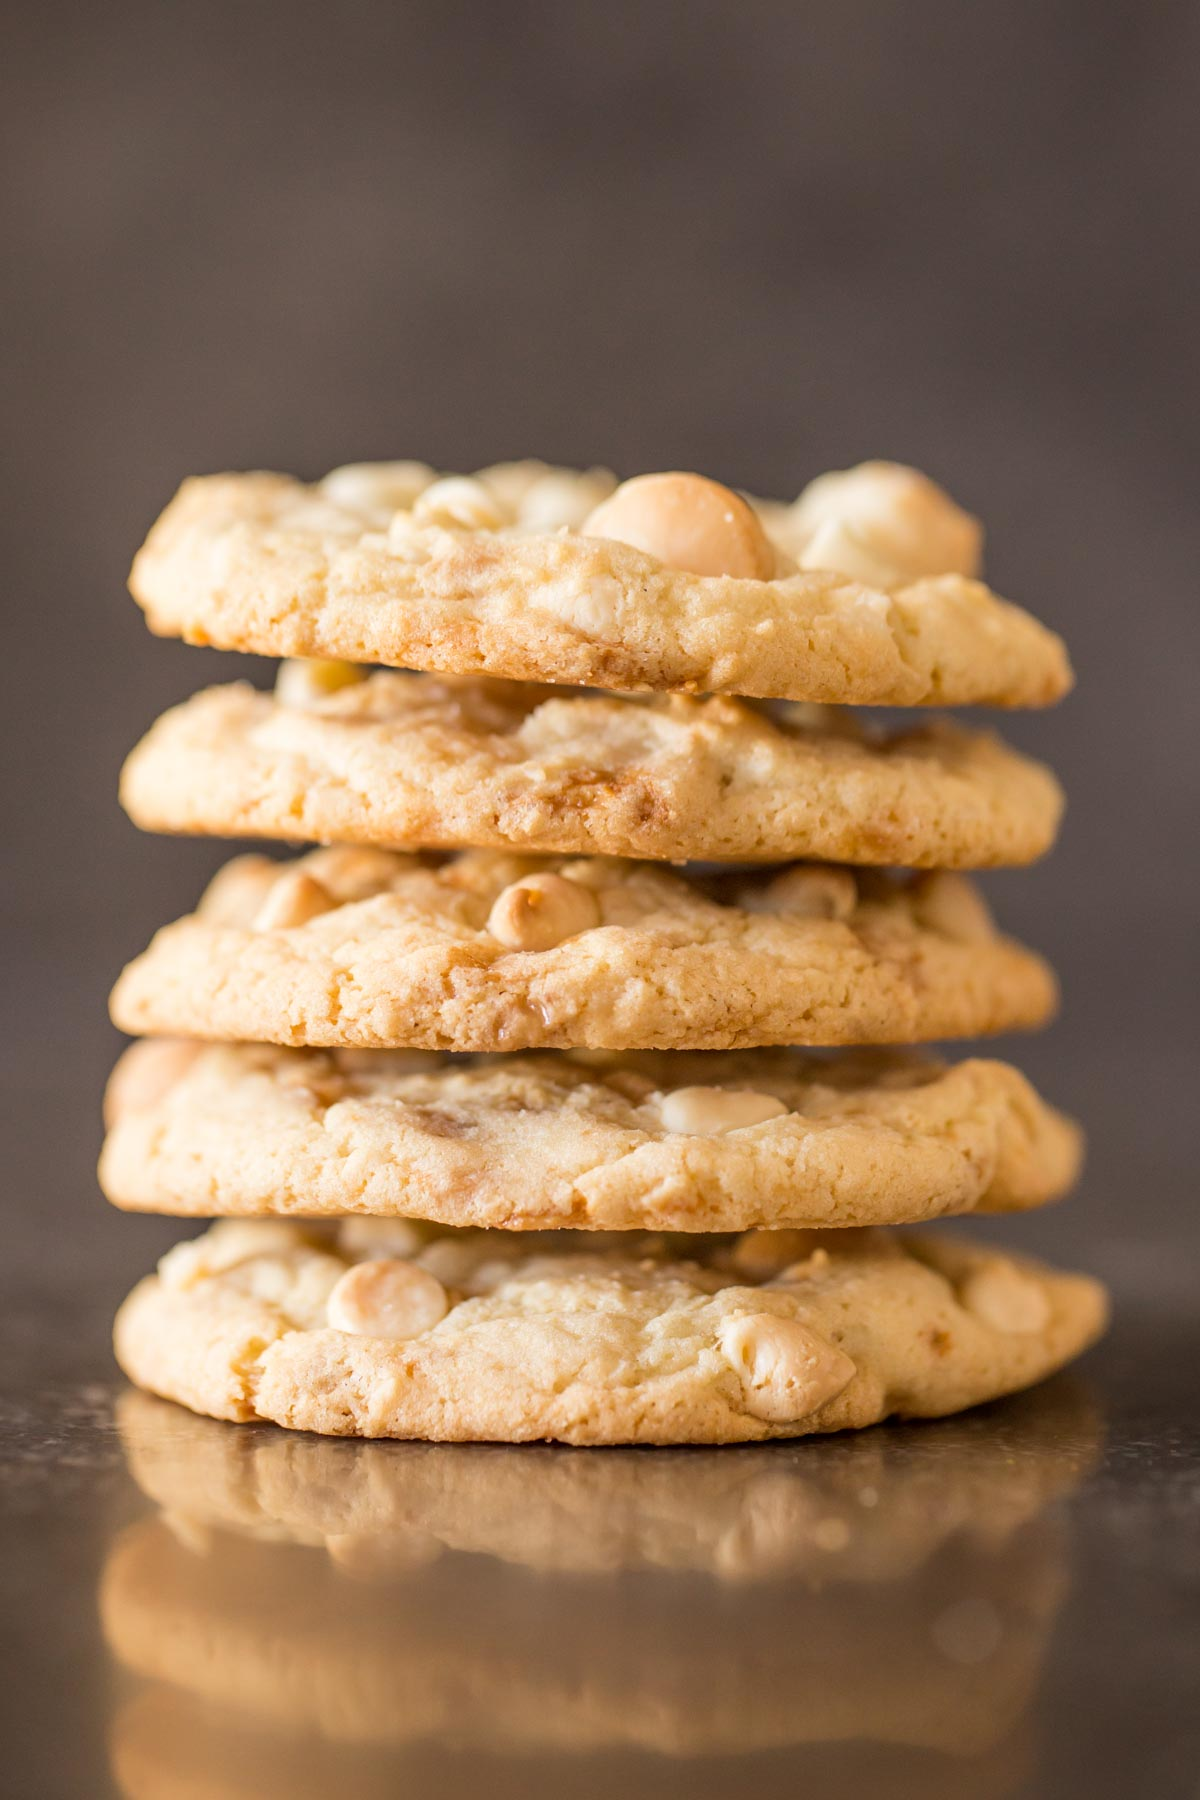 Five Buttery Toffee White Chocolate Chip Macadamia Nut Cookies stacked on top of each other.